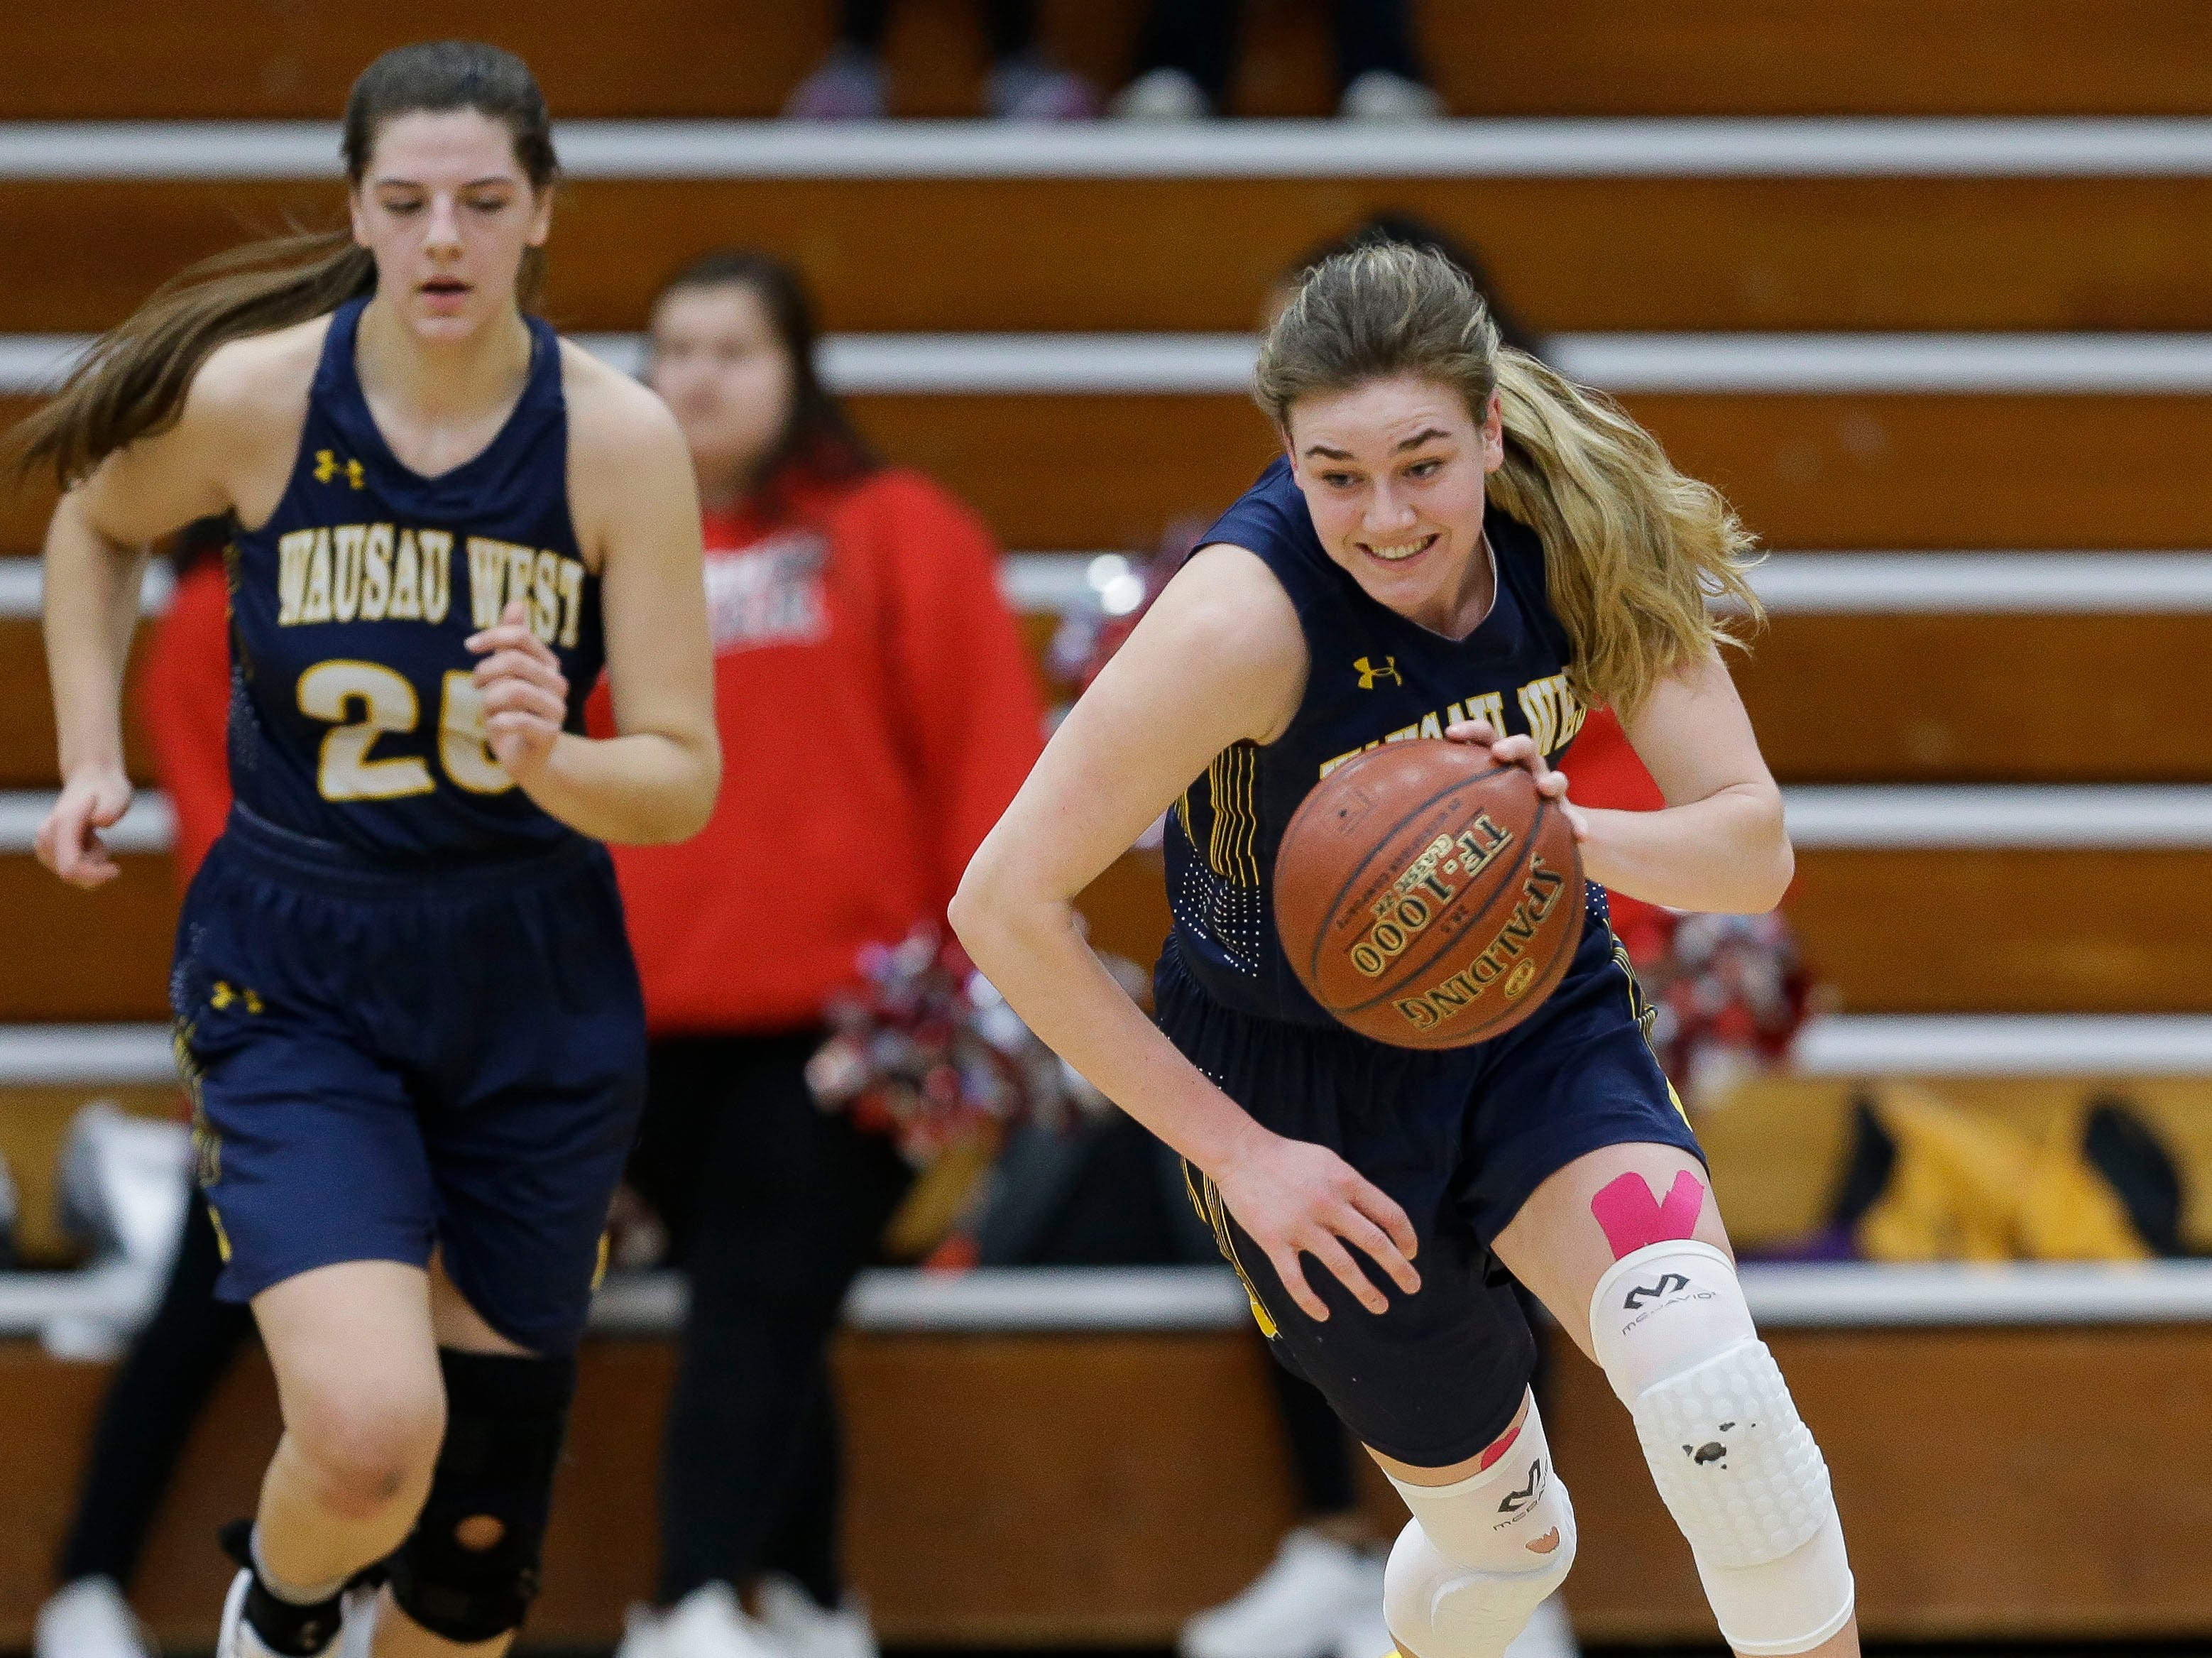 Wausau West's Kadie Deaton (3) leads a fast break against SPASH on Thursday, February 14, 2019, at SPASH in Stevens Point, Wis.Tork Mason/USA TODAY NETWORK-Wisconsin